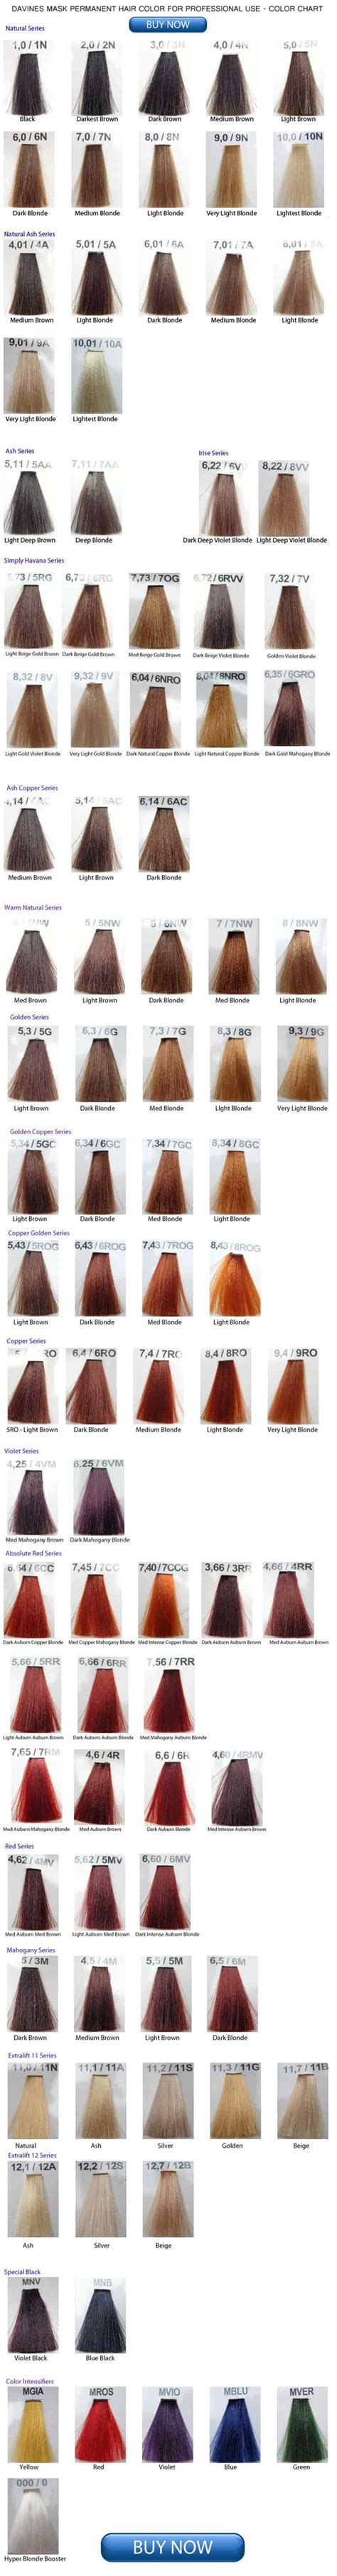 davines hair color davines hair color davines hair color chart brown